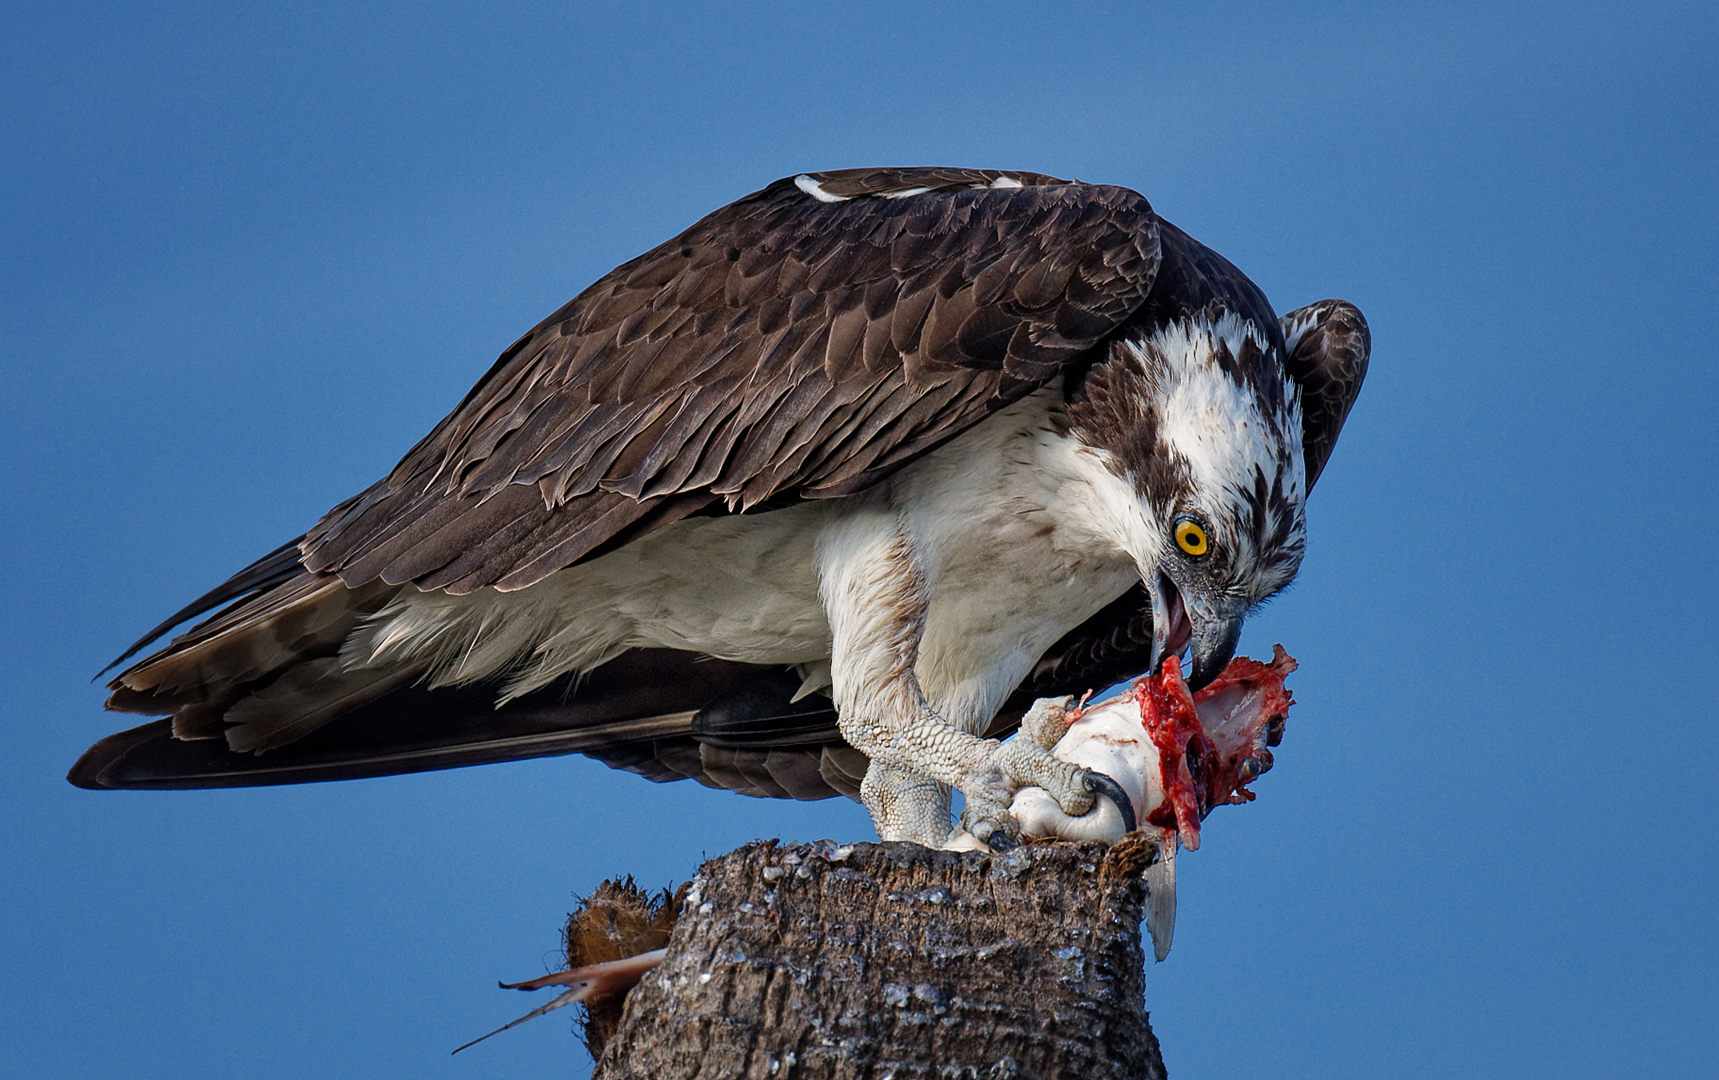 Michael Laezza – Osprey Feeding – 1ST